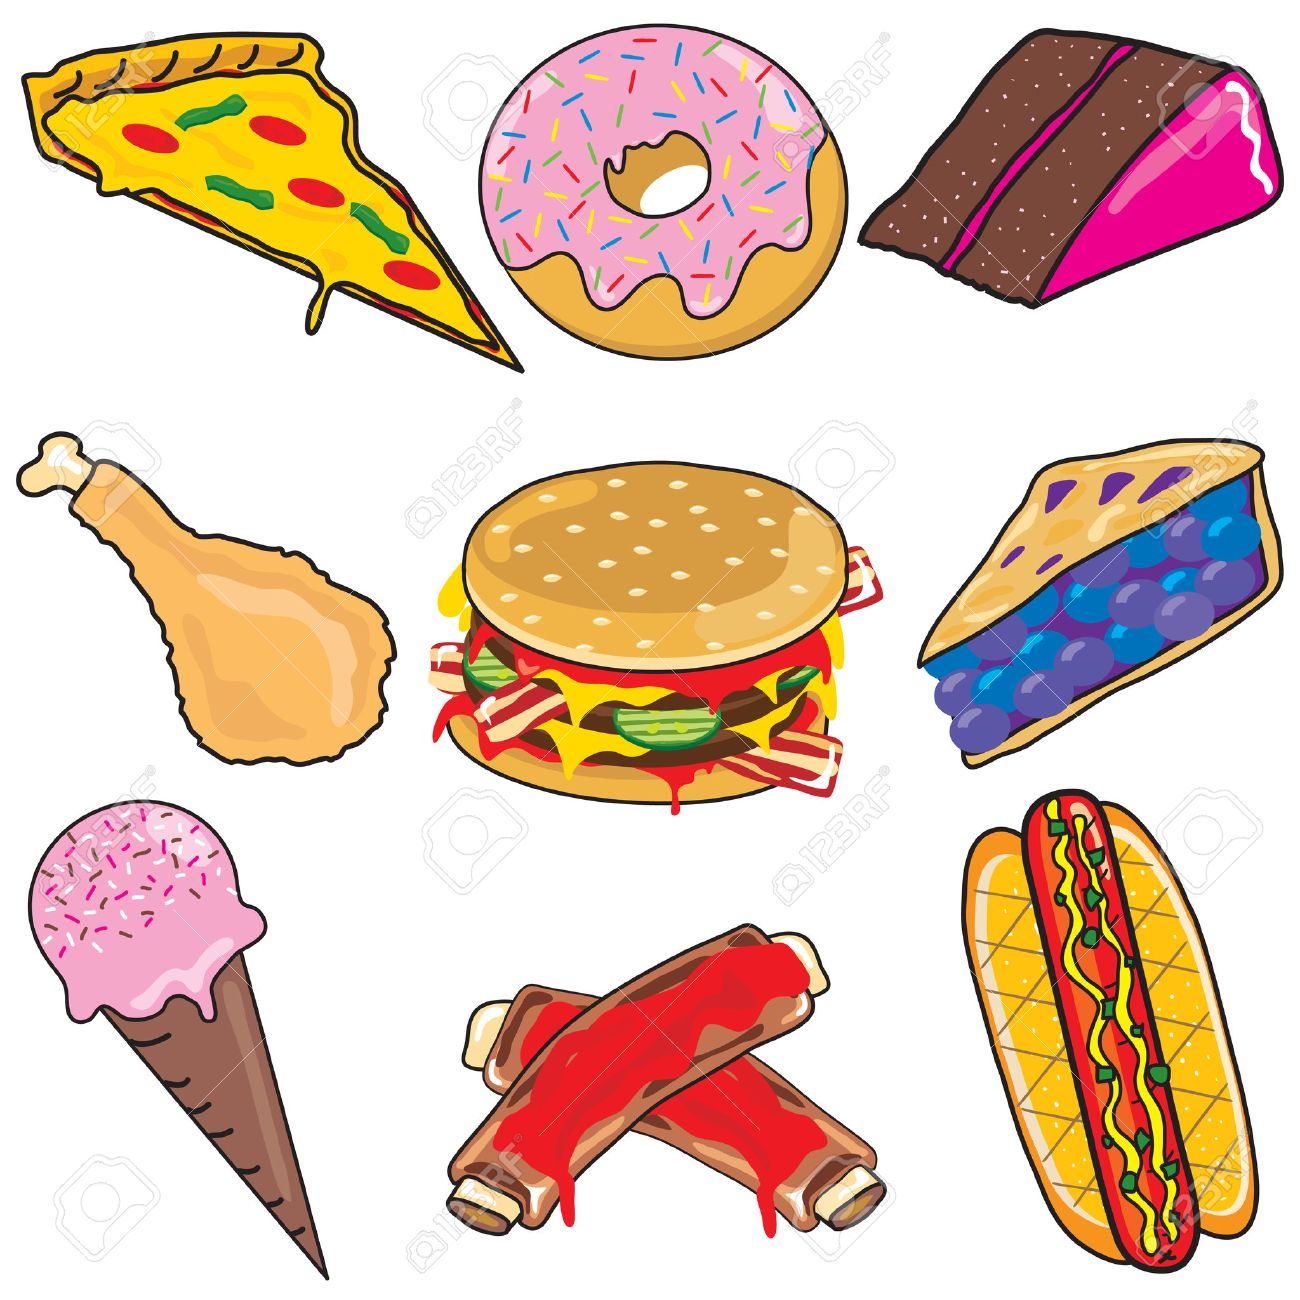 junk food clipart elements and icons royalty free cliparts vectors rh 123rf com junk food clipart no junk food clipart